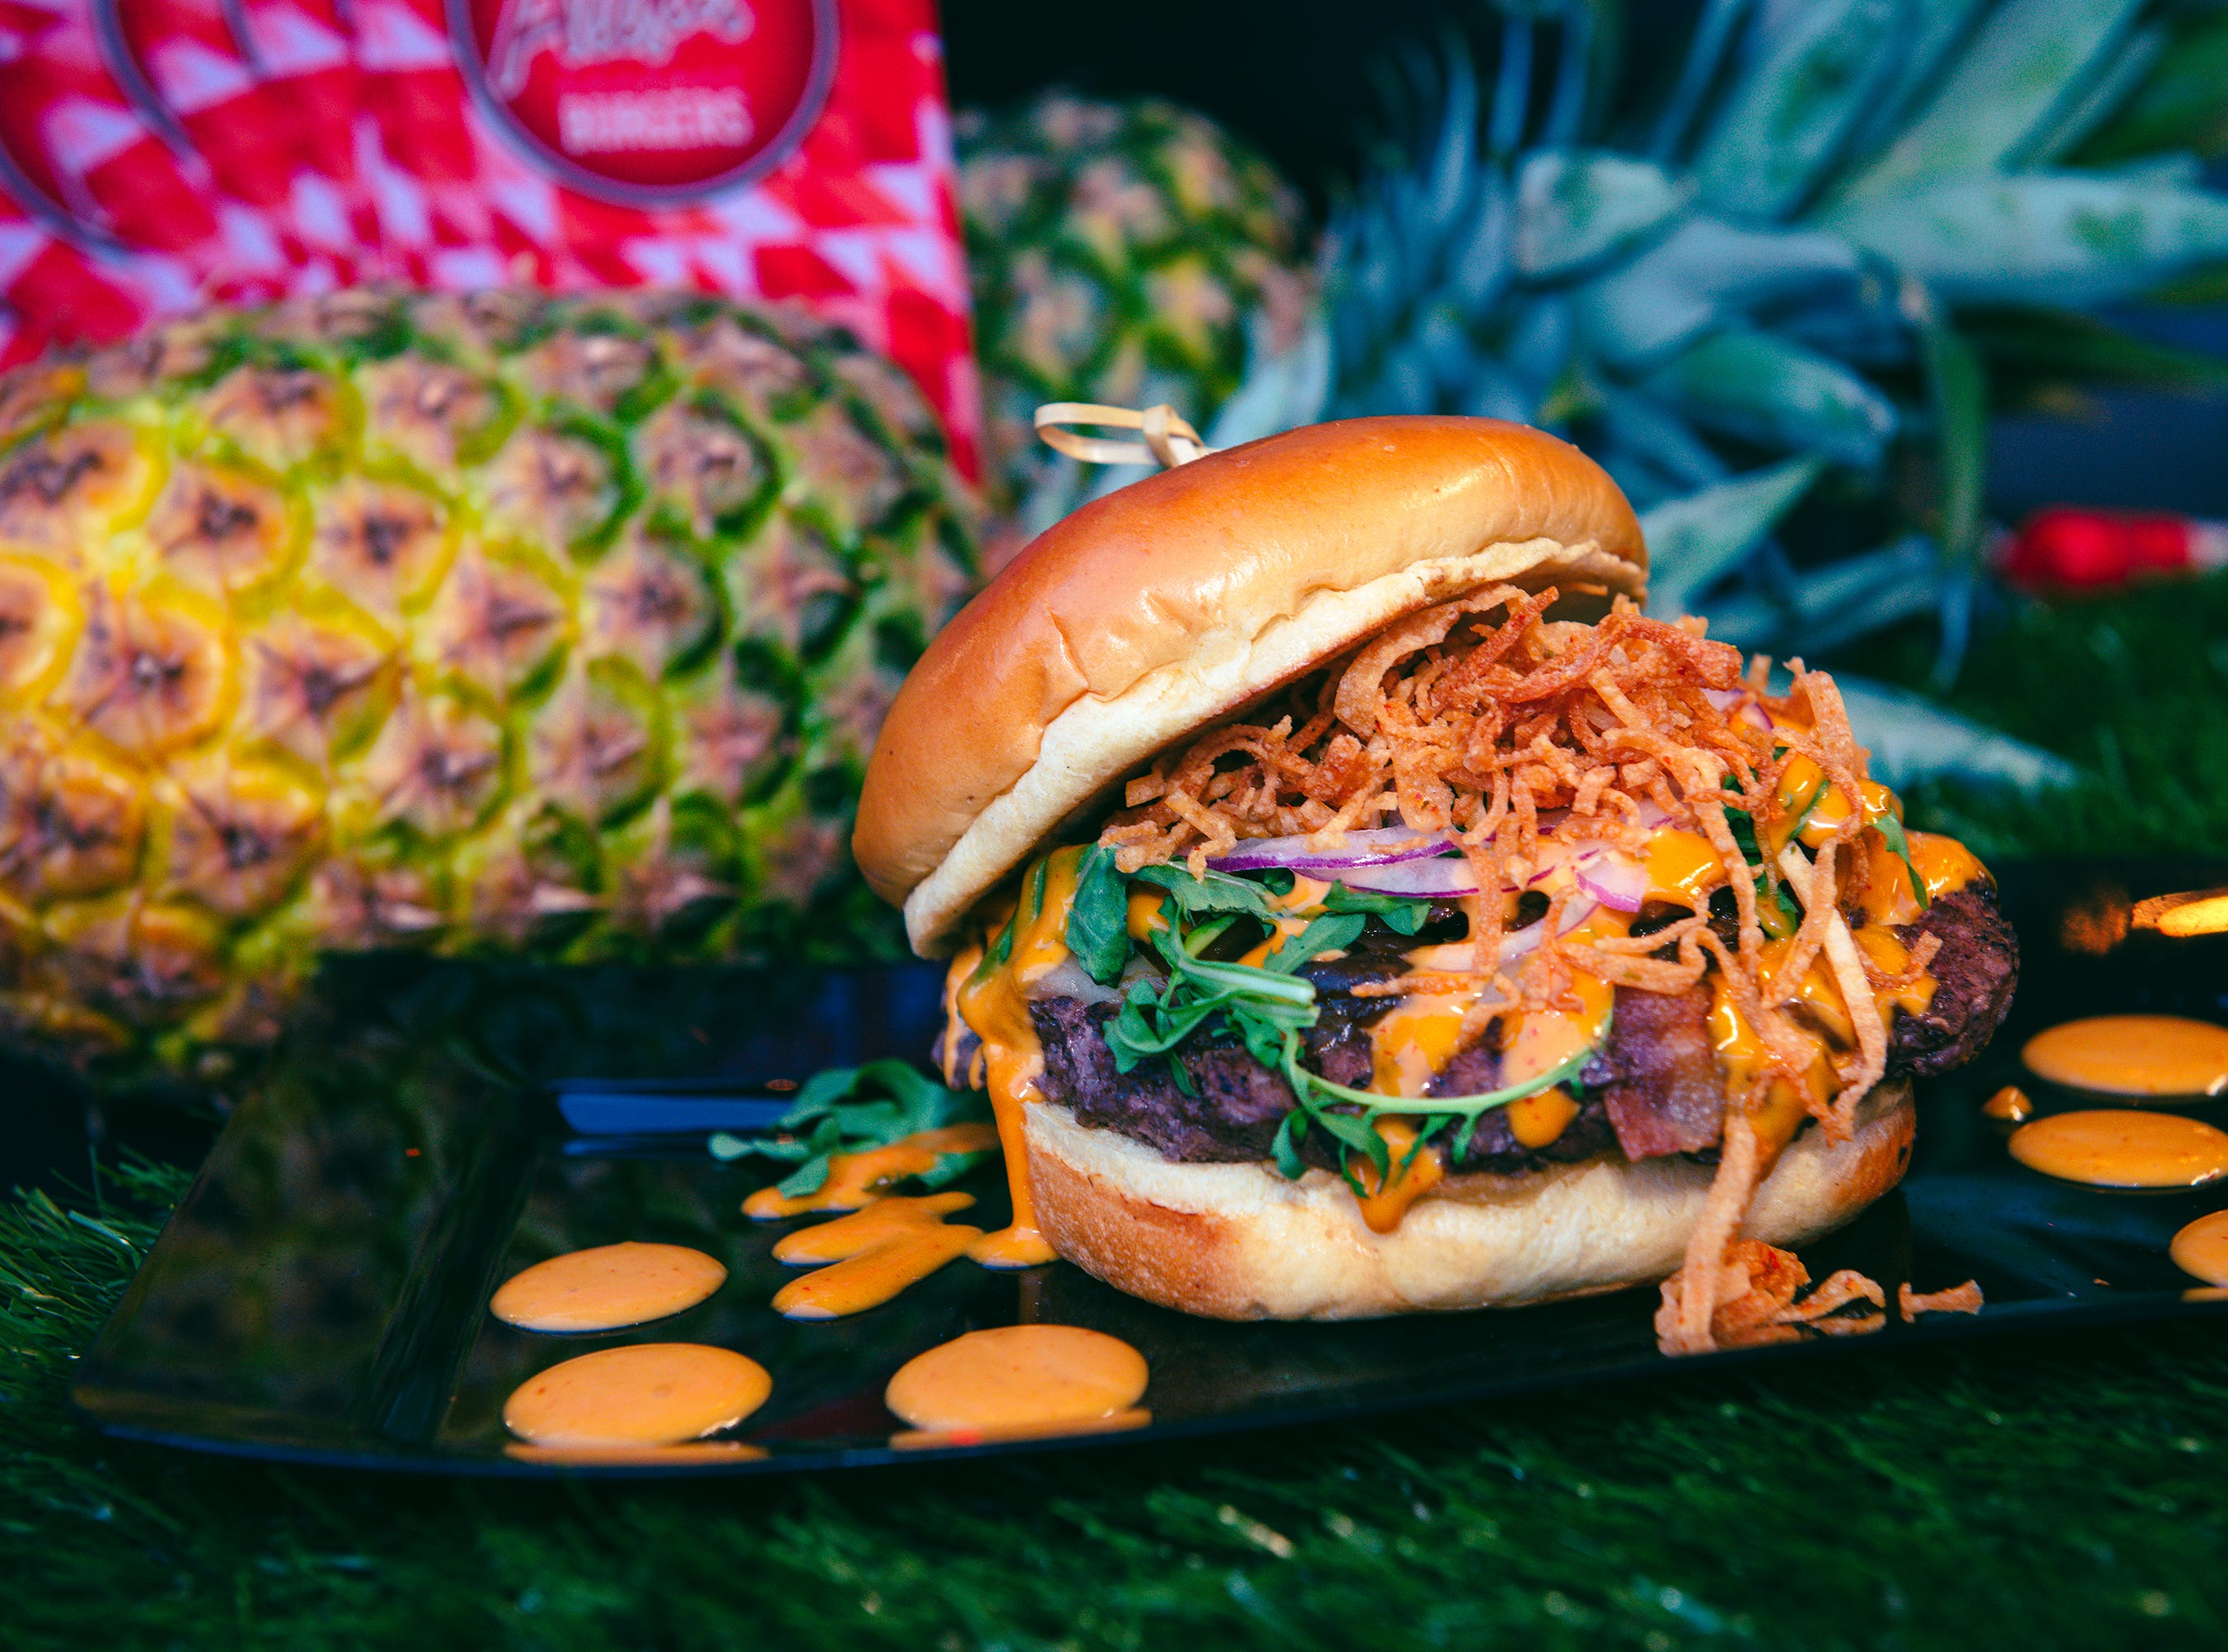 Four Peaks Burger Battle, a charity fundraising showdown presented by Scottsdale League for the Arts and City of Scottsdale is coming up on March 22, 2019 at Scottsdale Waterfront.